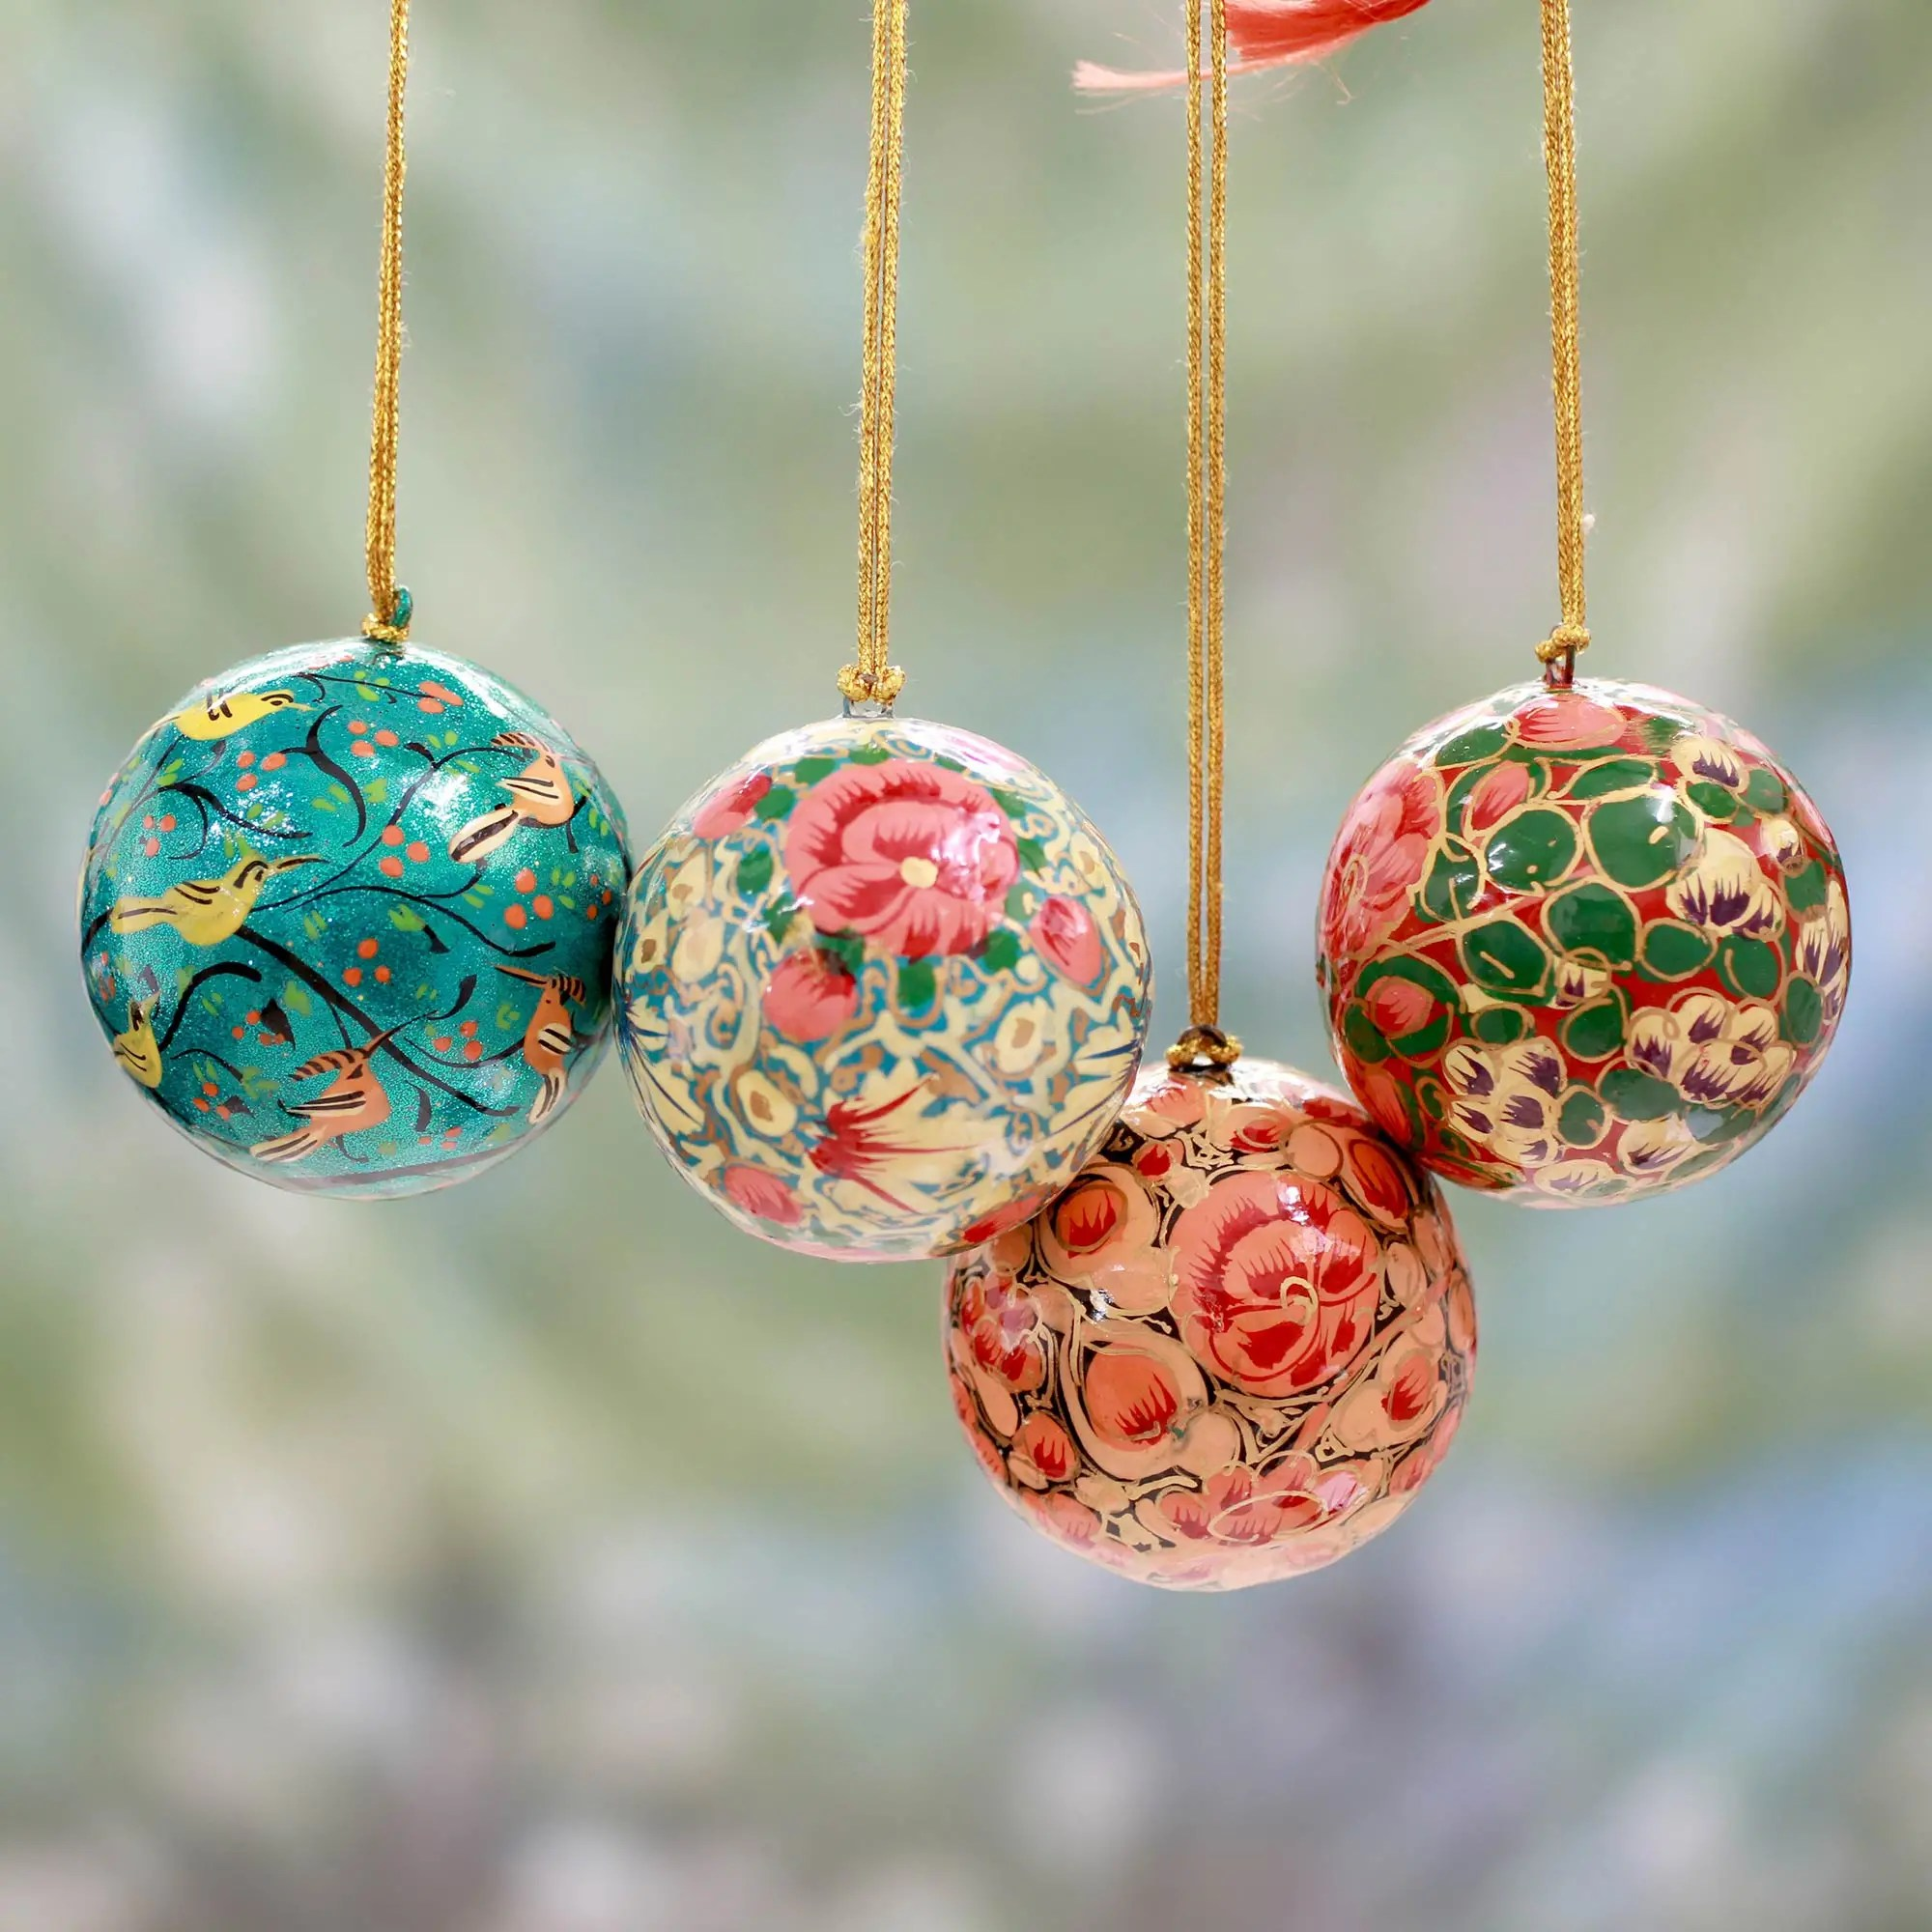 Pantone Christmas Ornaments India Handmade Papier Mache Christmas Ornaments Set Of 4 Christmas Joy